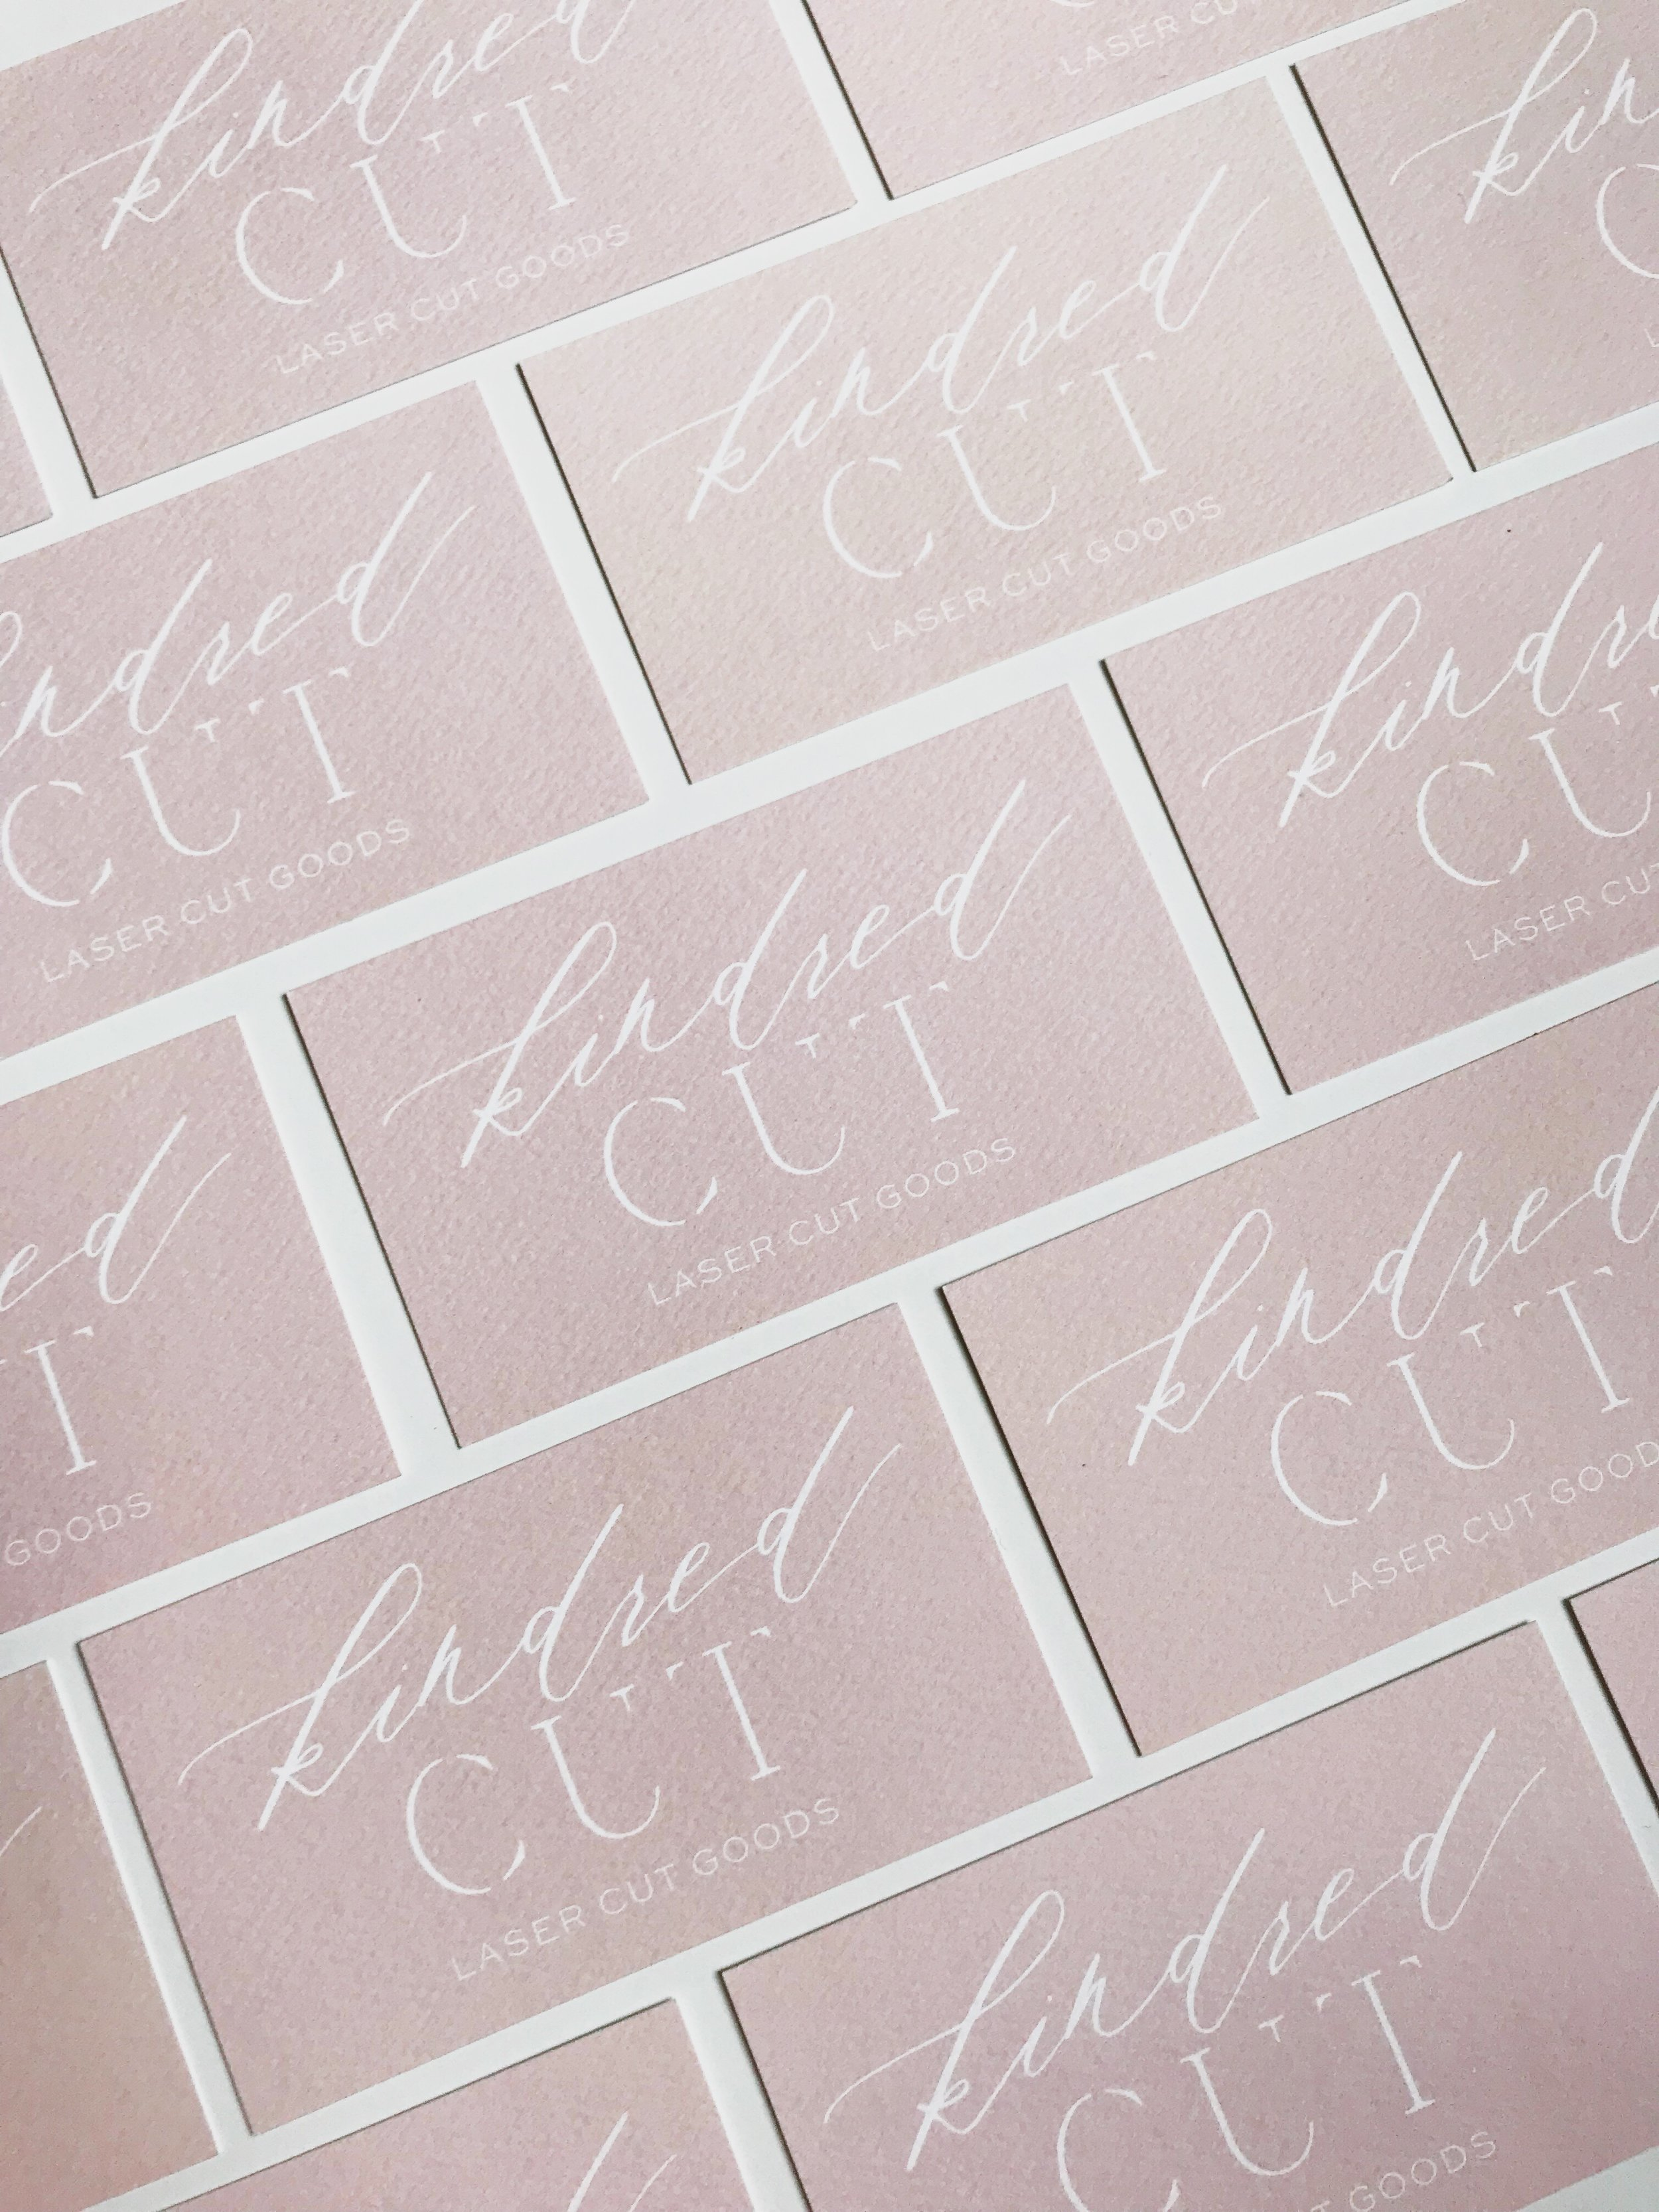 KINDRED CUT BUSINESS CARDS BLUSH PINK